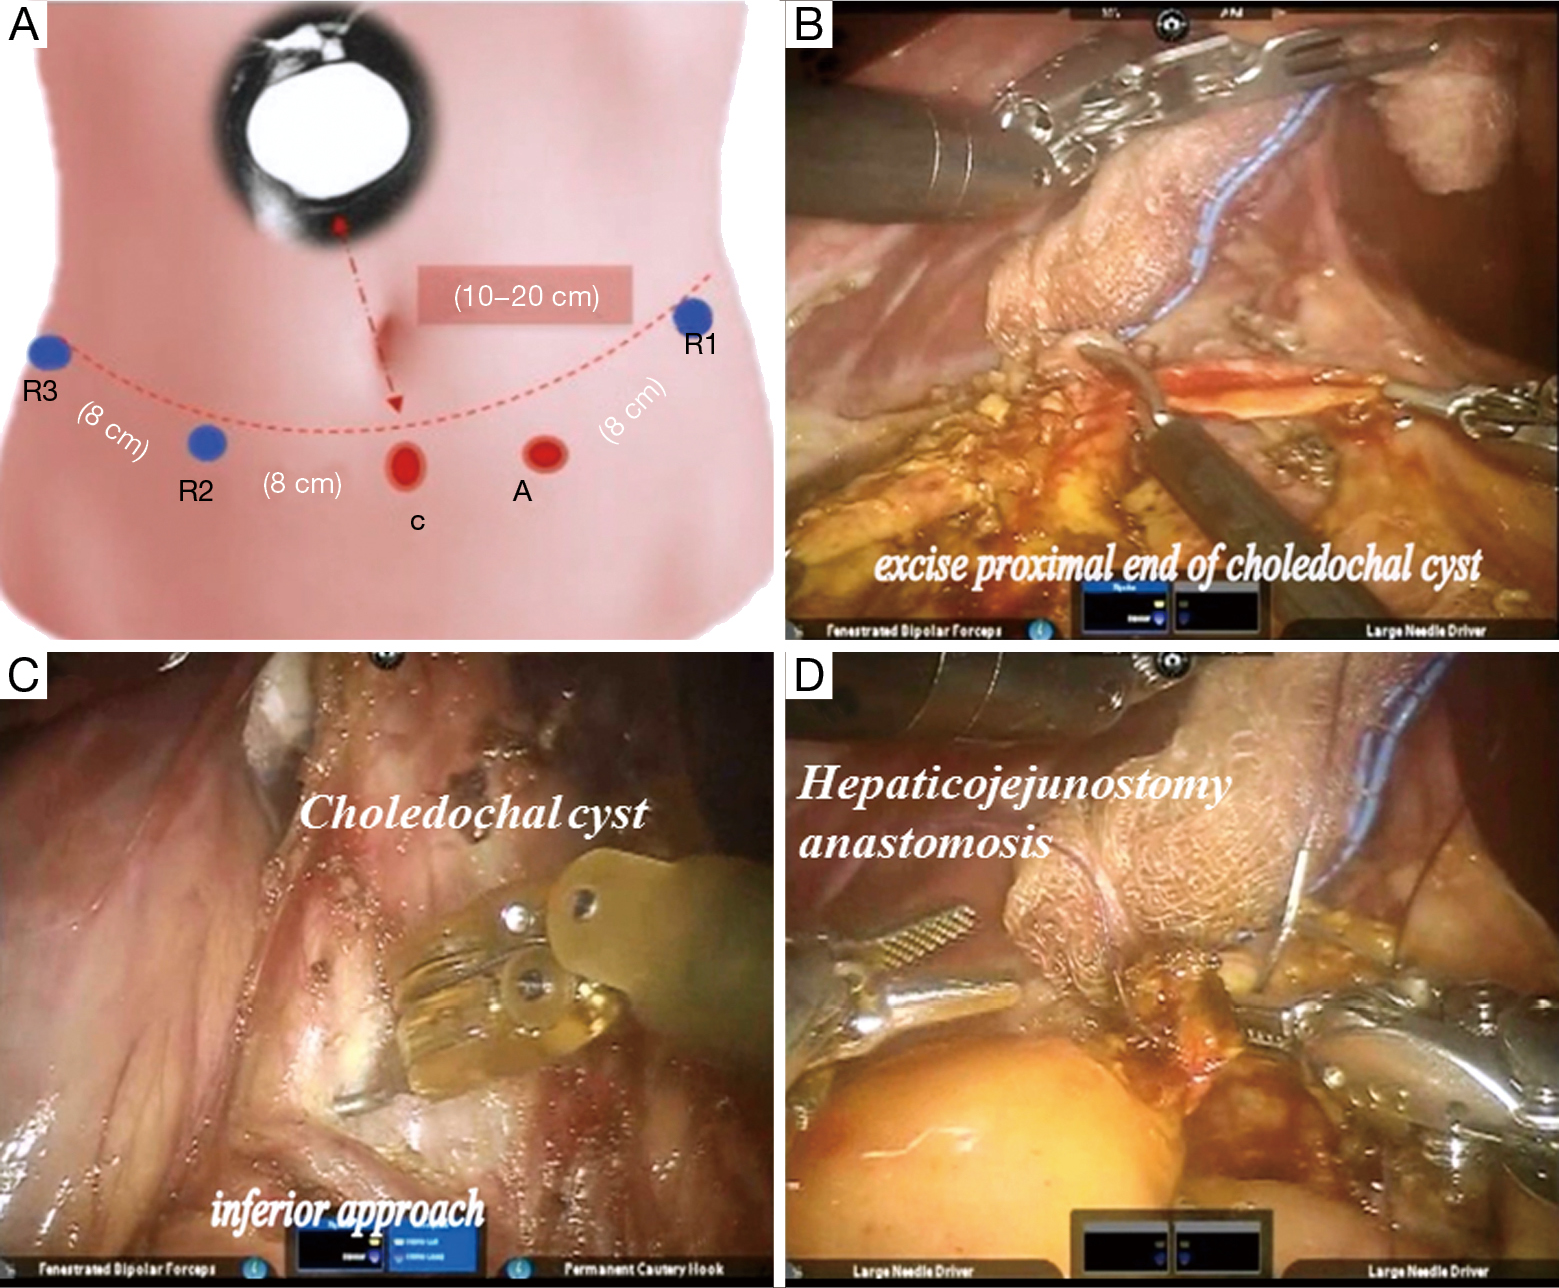 Robotic assisted excision of type I choledochal cyst with